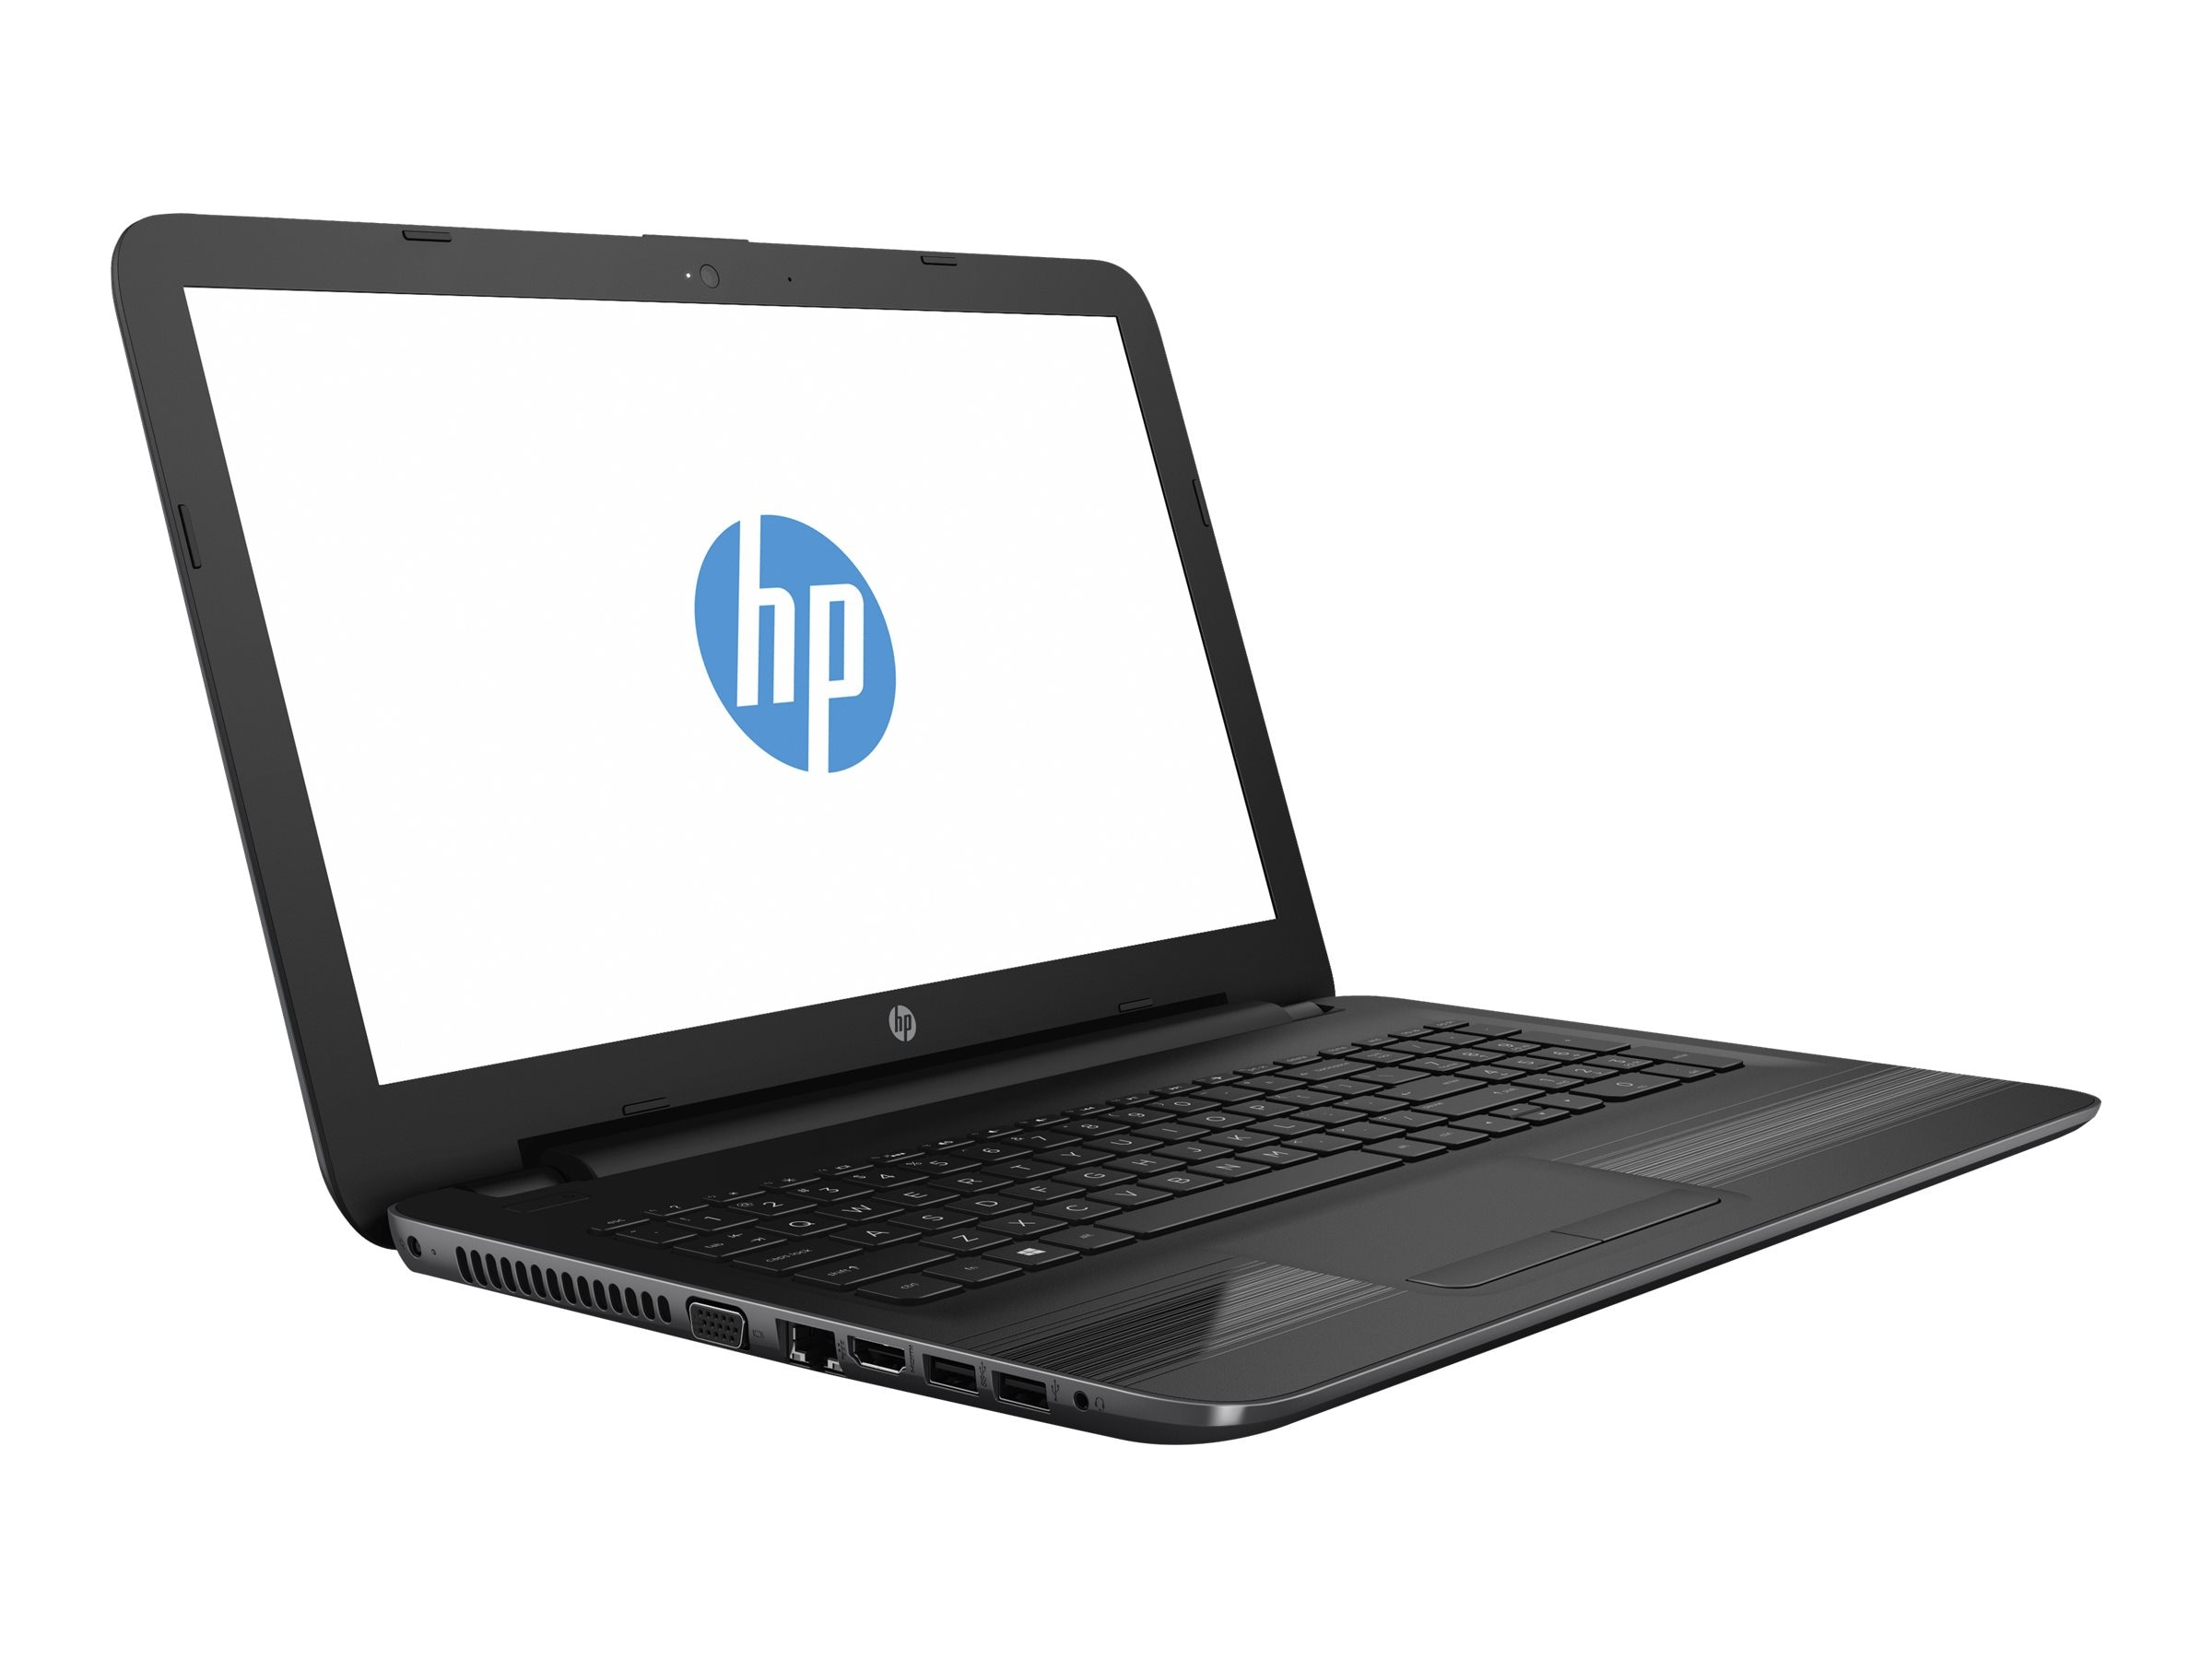 HP 255 G5 1.8GHz E2 series 15.6in display, W0S60UT#ABA